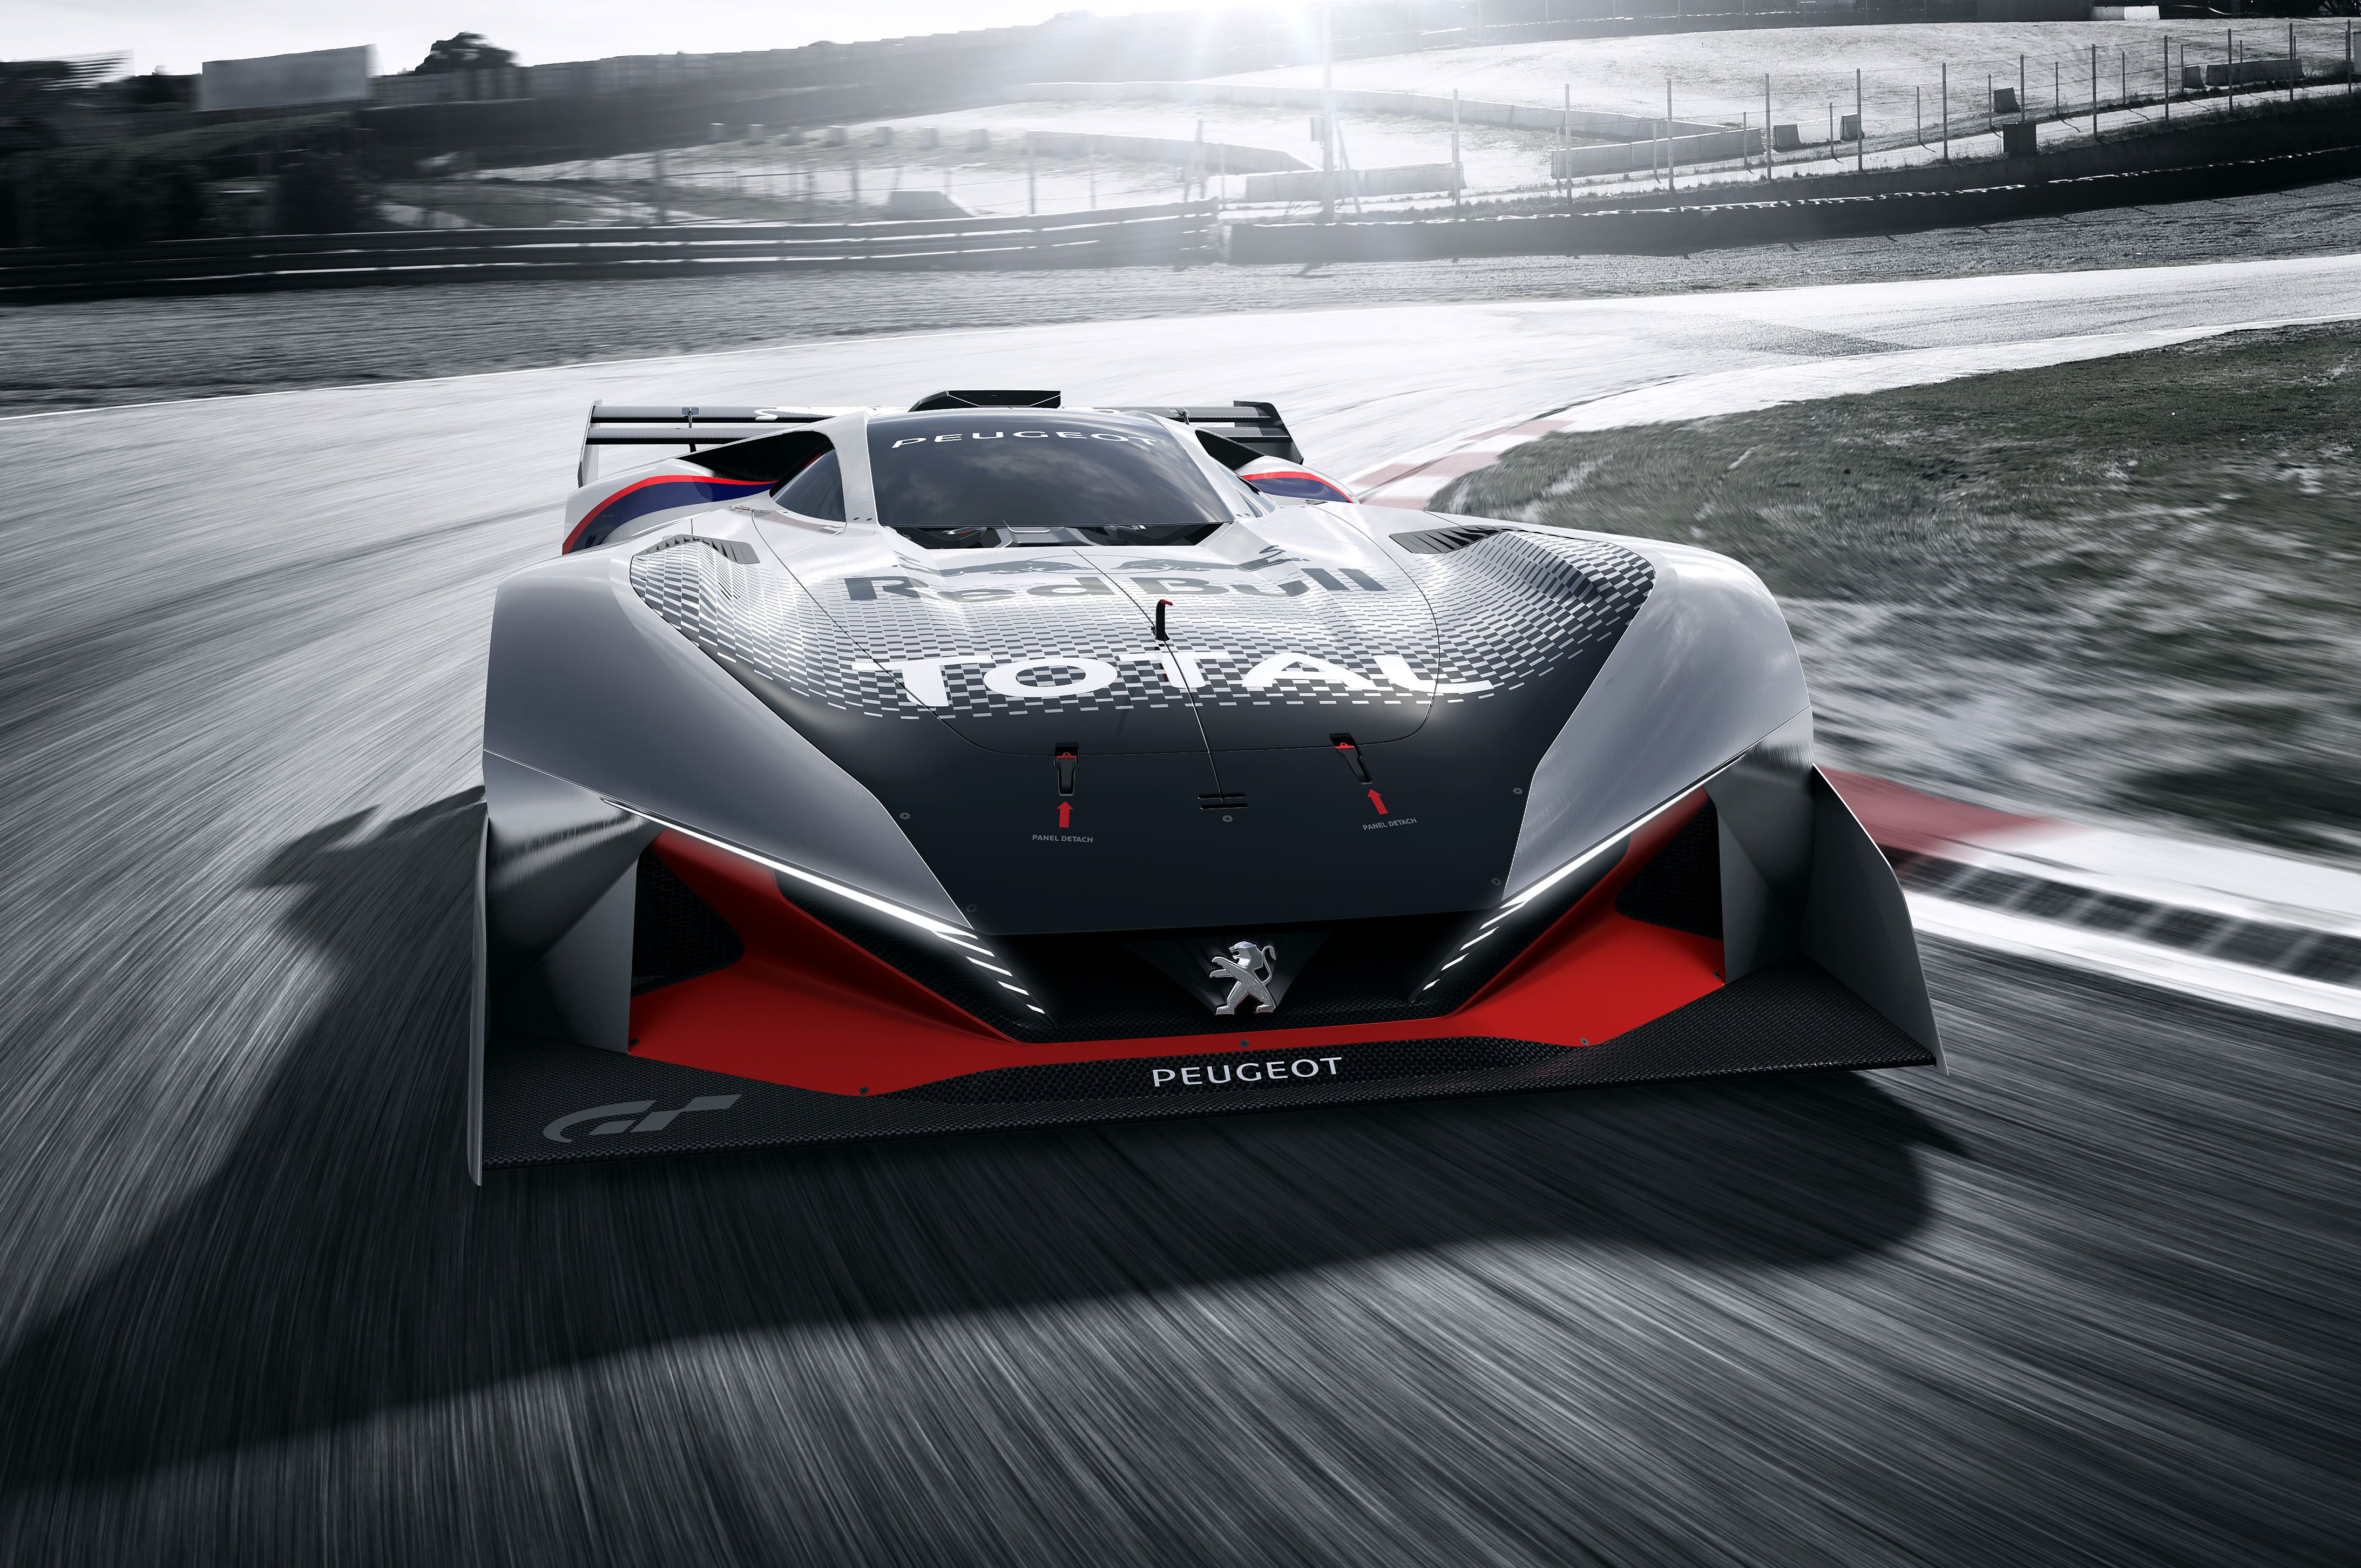 News Peugeot L750 R Hybrid Vision Coming to Gran Turismo